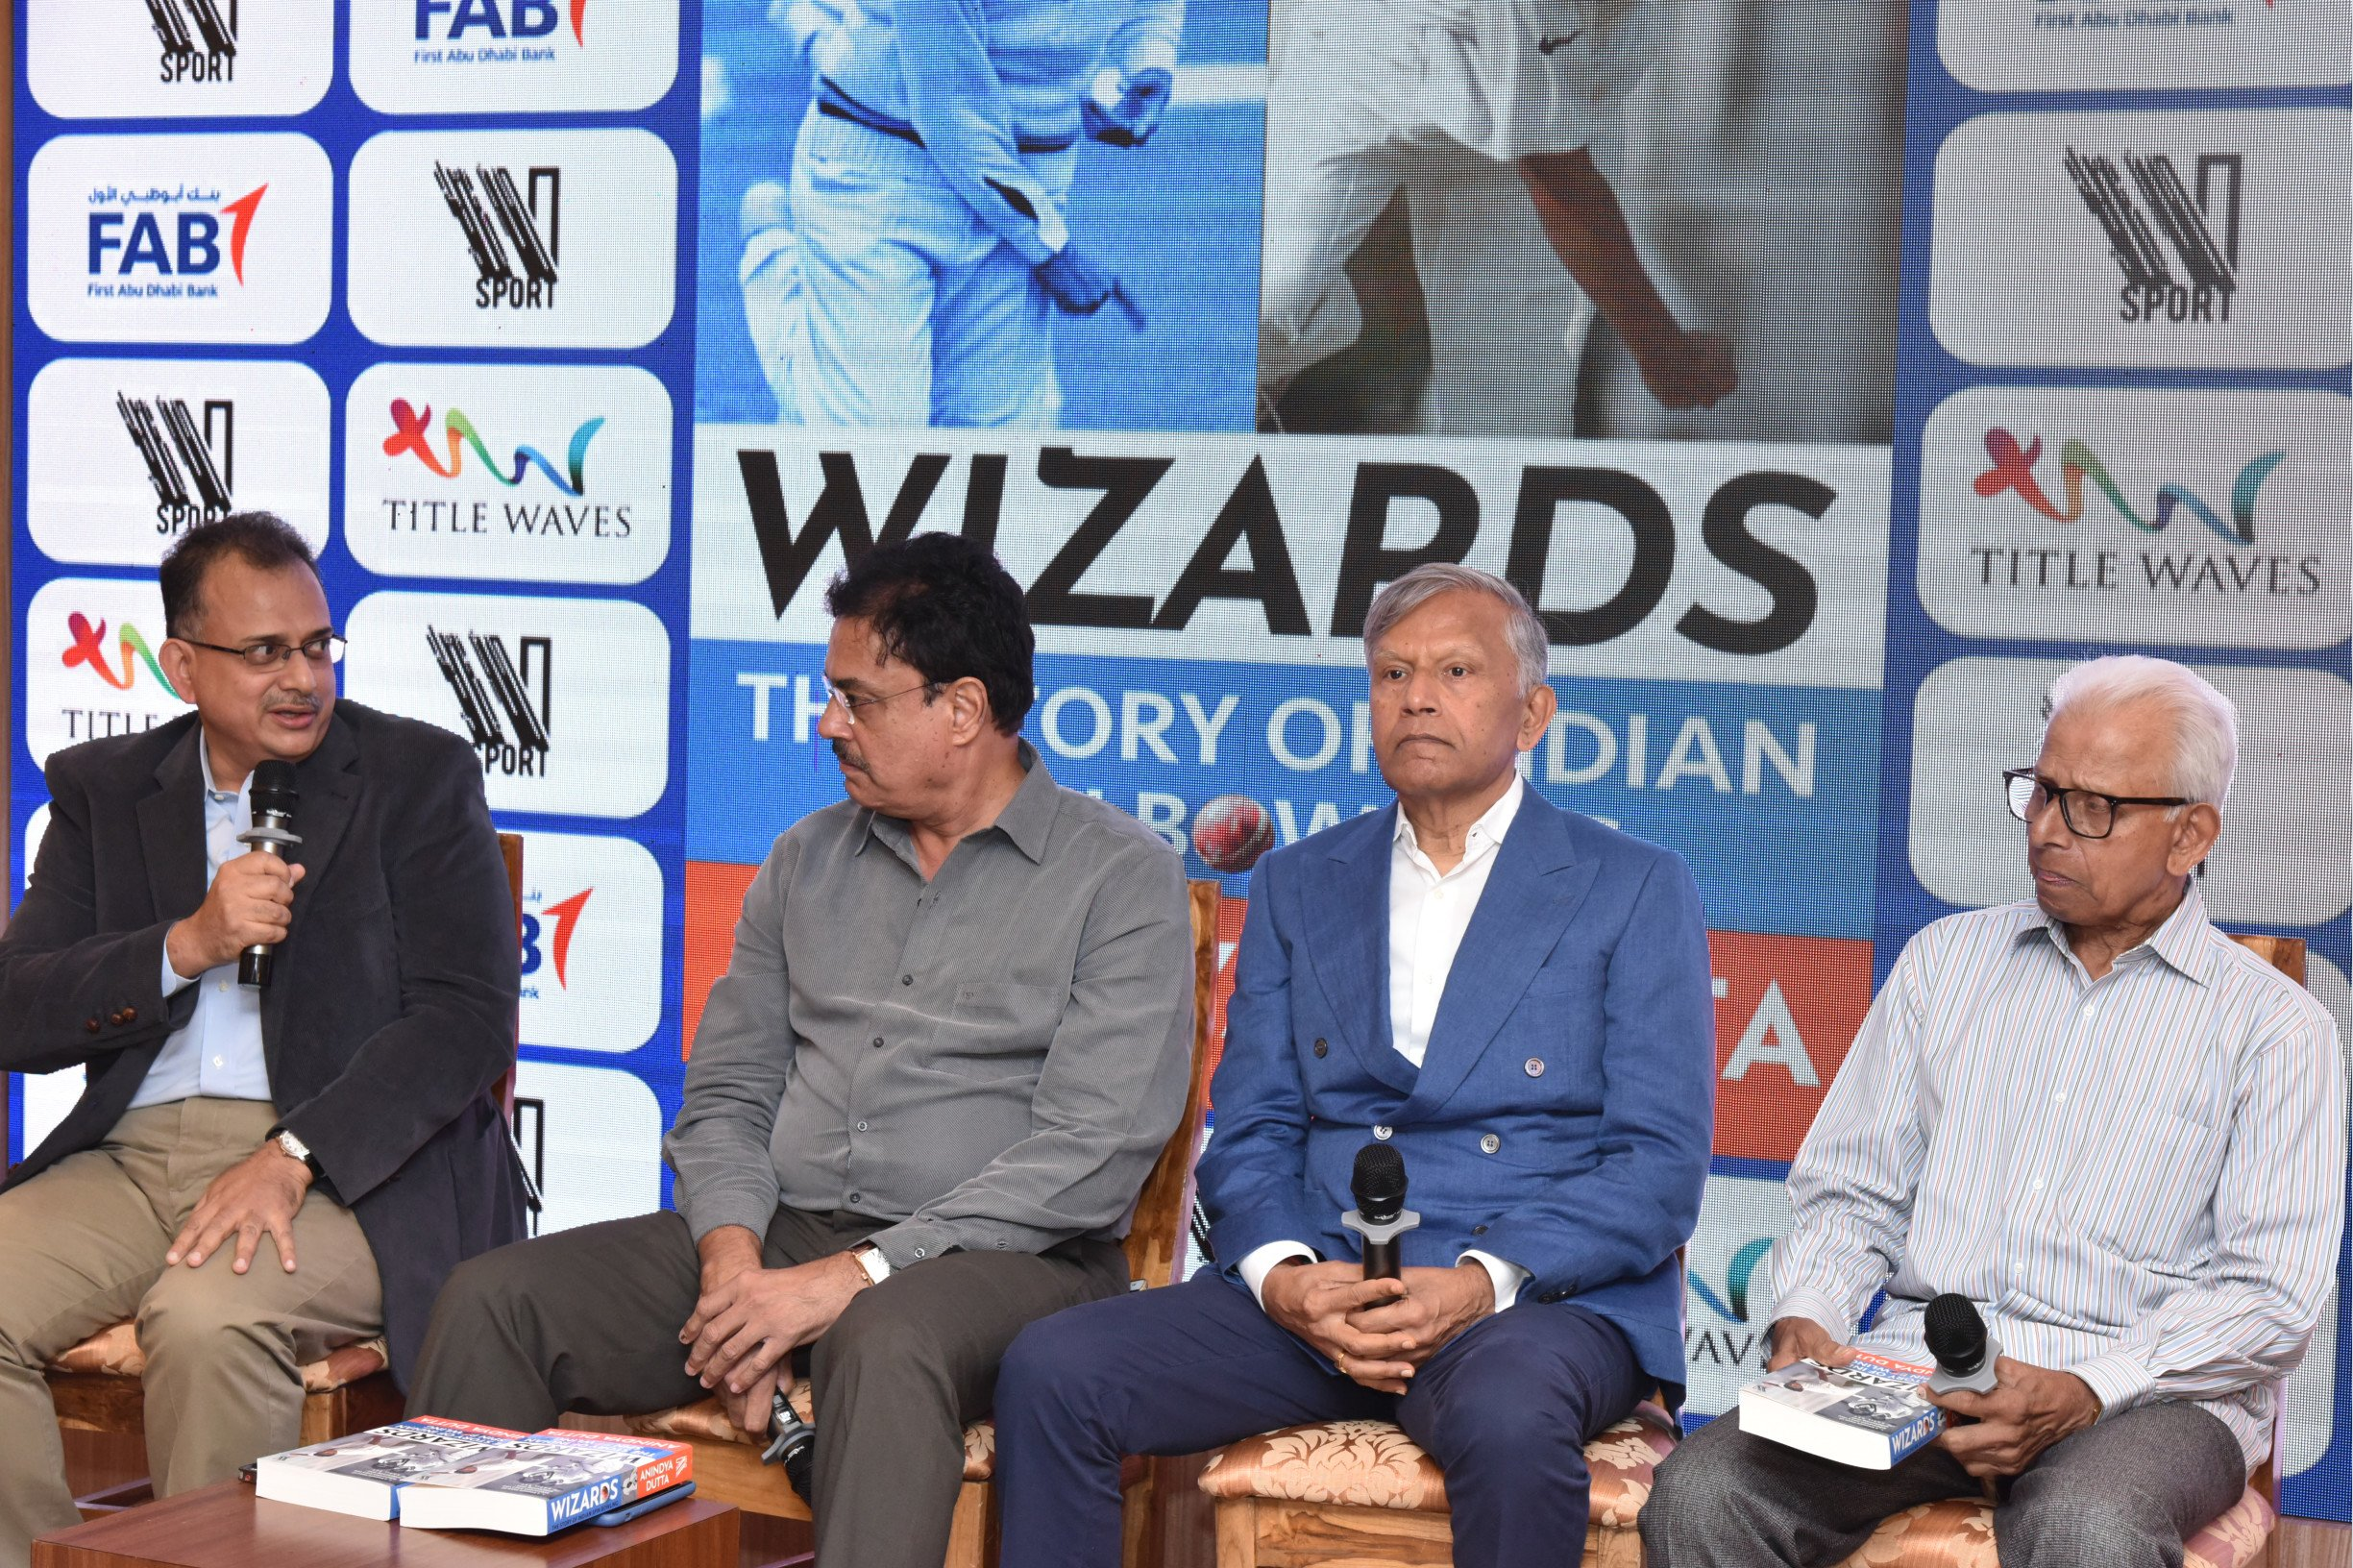 Anindya Dutta launches his latest book, Wizards: The Story of Indian Spin Bowling